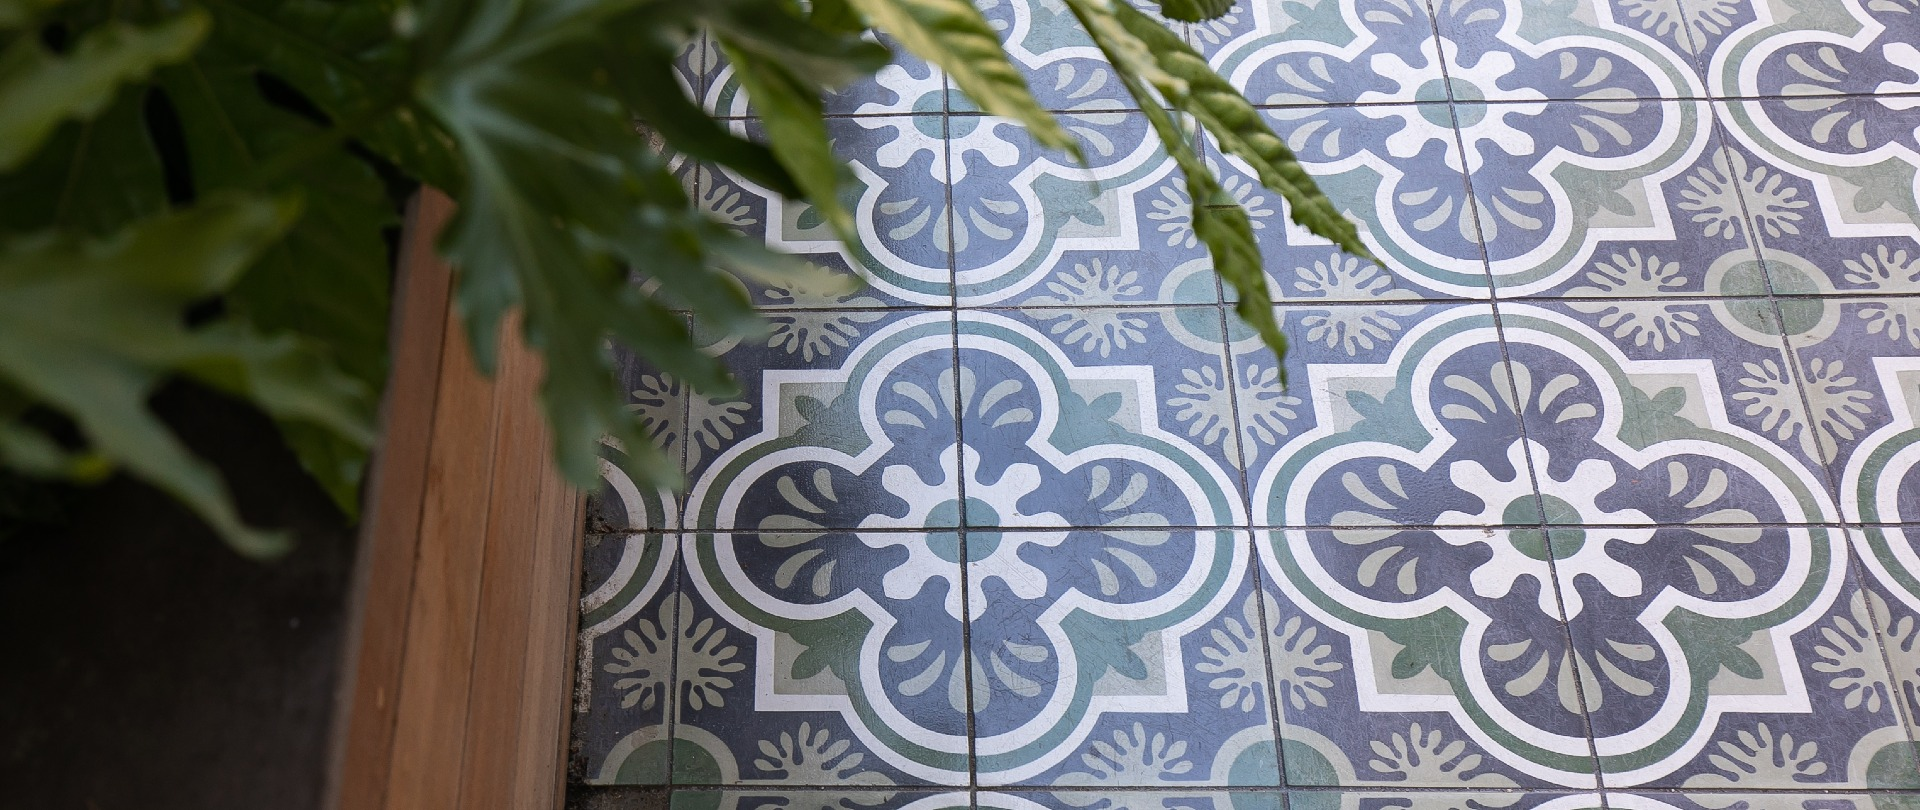 Create your own Joy with Custom Cement Tile! Design your own with our Tile Design Tool.